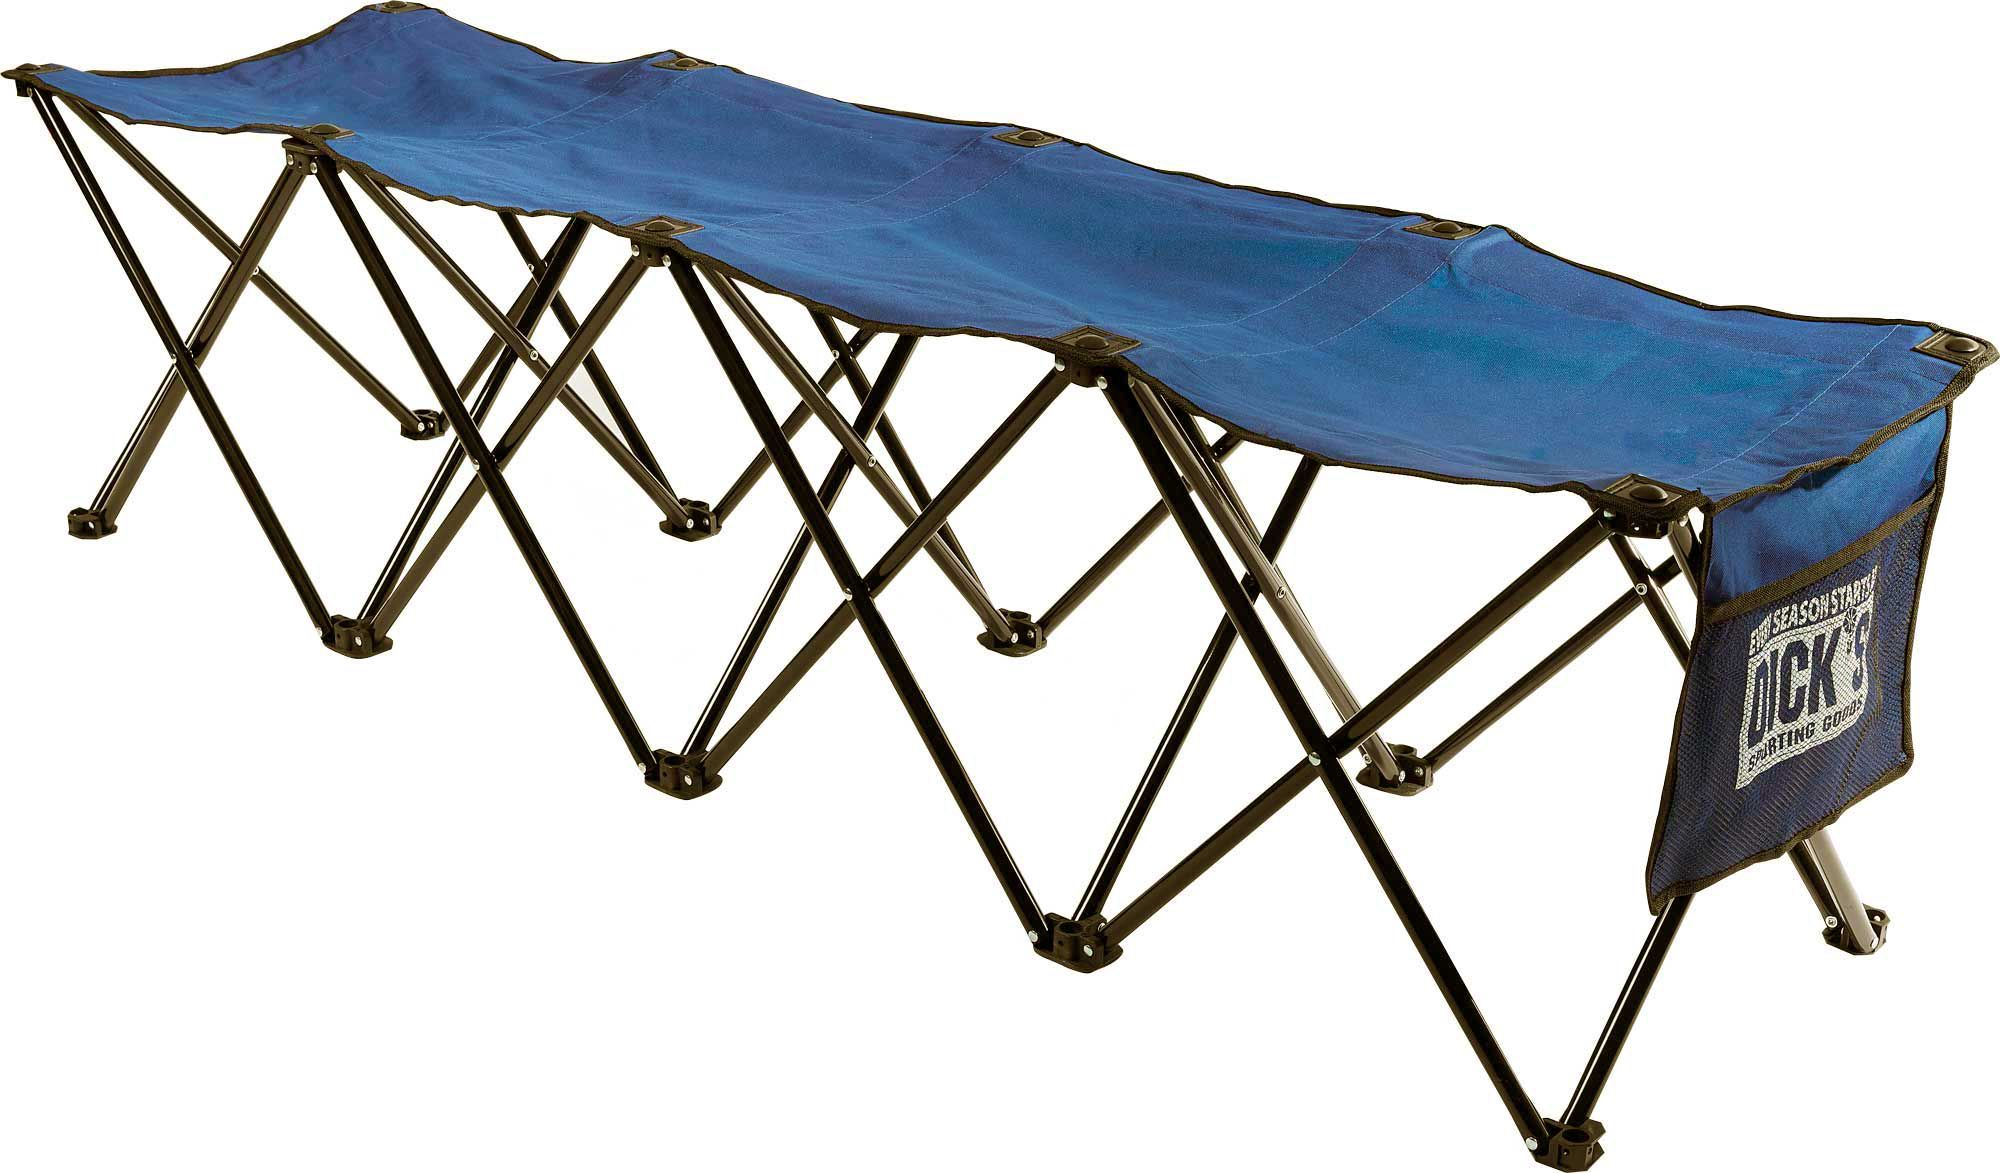 Dick s Sporting Goods Sidelines Folding Bench